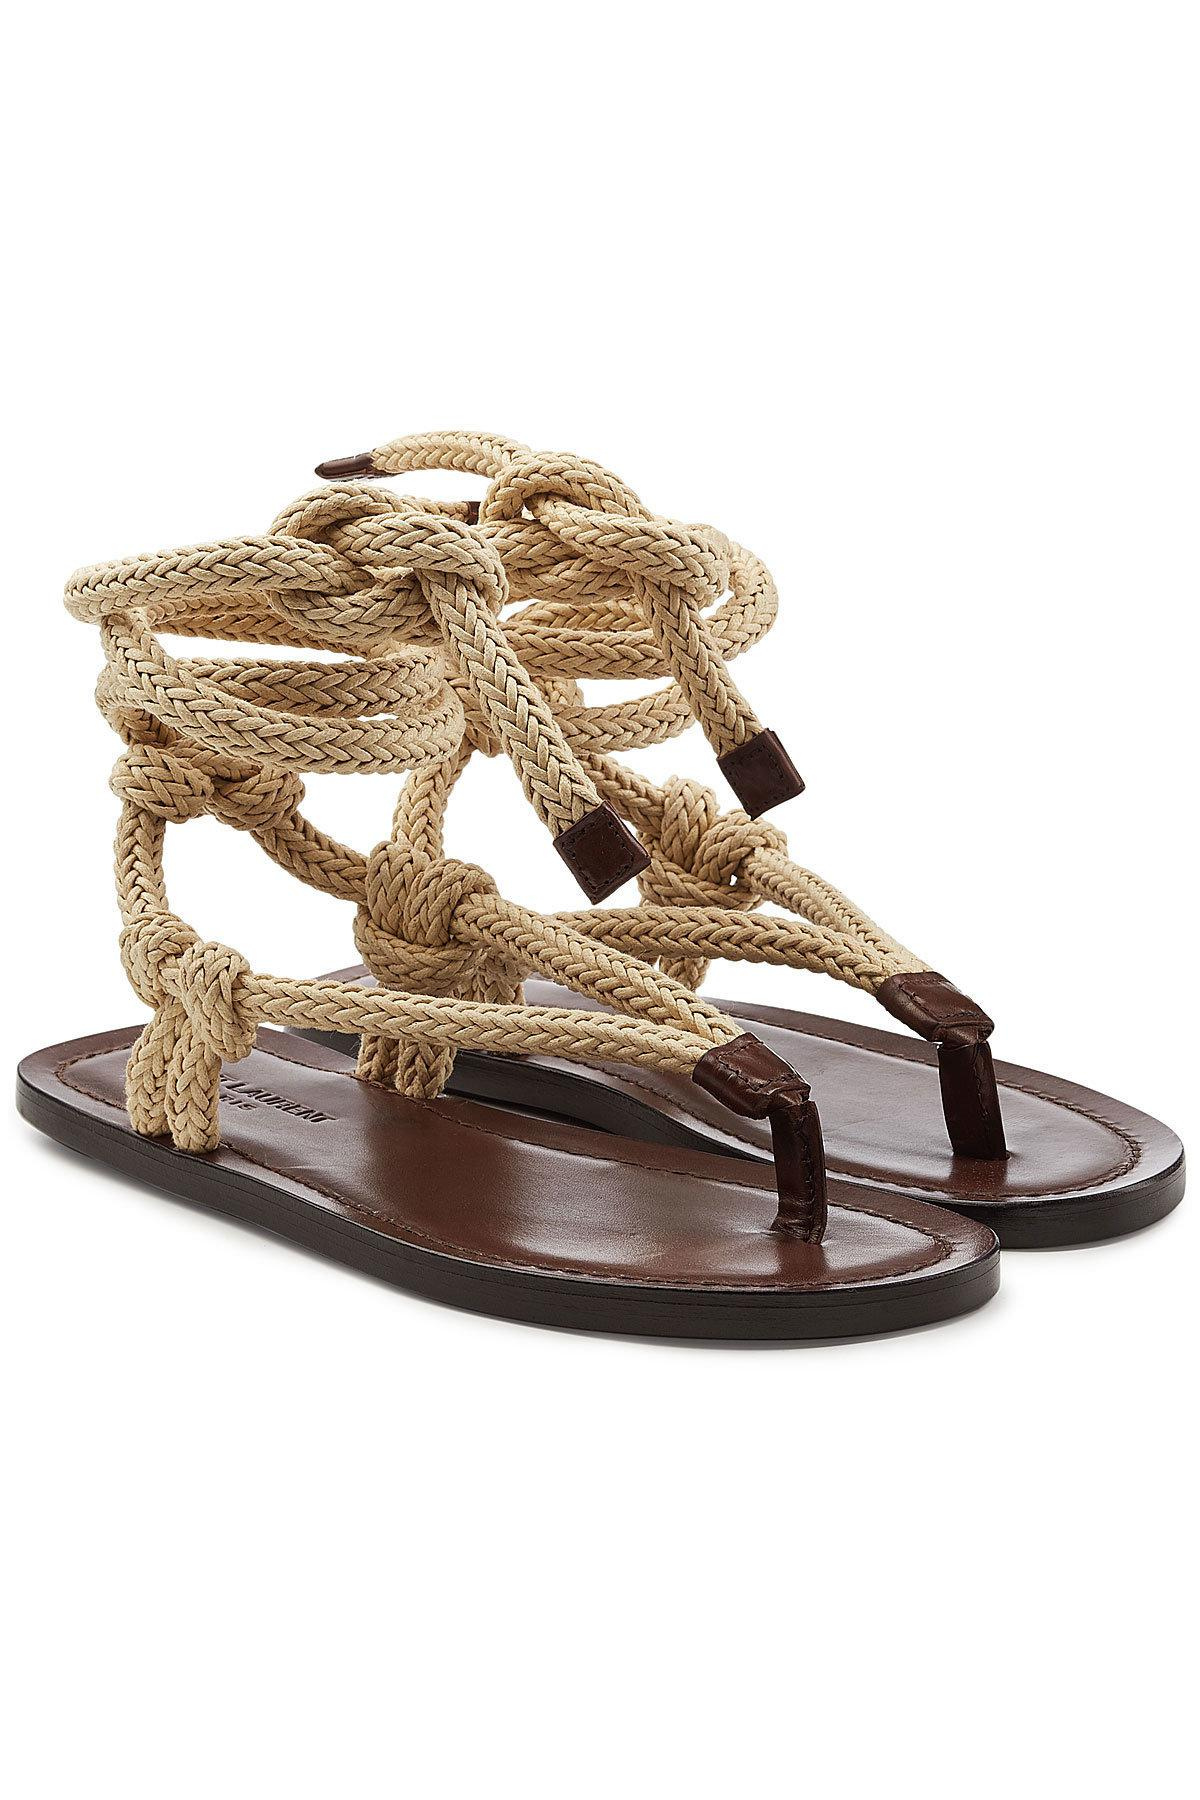 6c016e86db4d70 Lyst saint laurent rope sandals with leather for men jpg 1200x1800 His rope  sandals